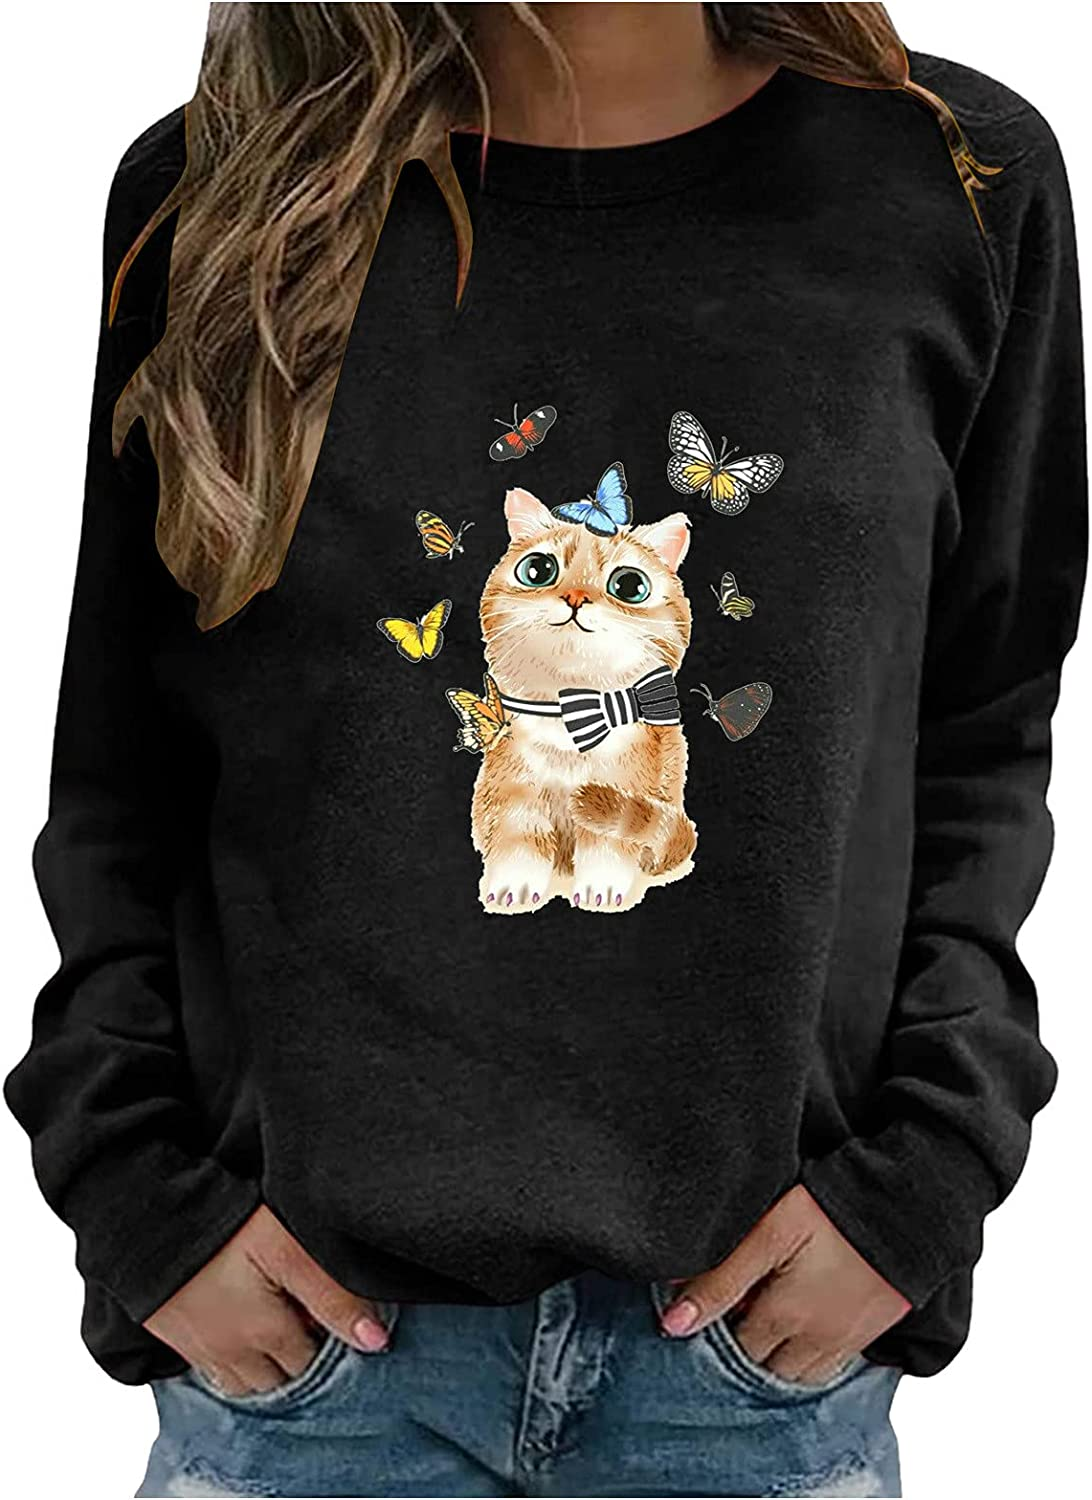 Crewneck Sweatshirts for Women Graphic Cute Cat Print Long Sleeve Pullover Tops Shirts Blouse Sweaters for Teen Girls